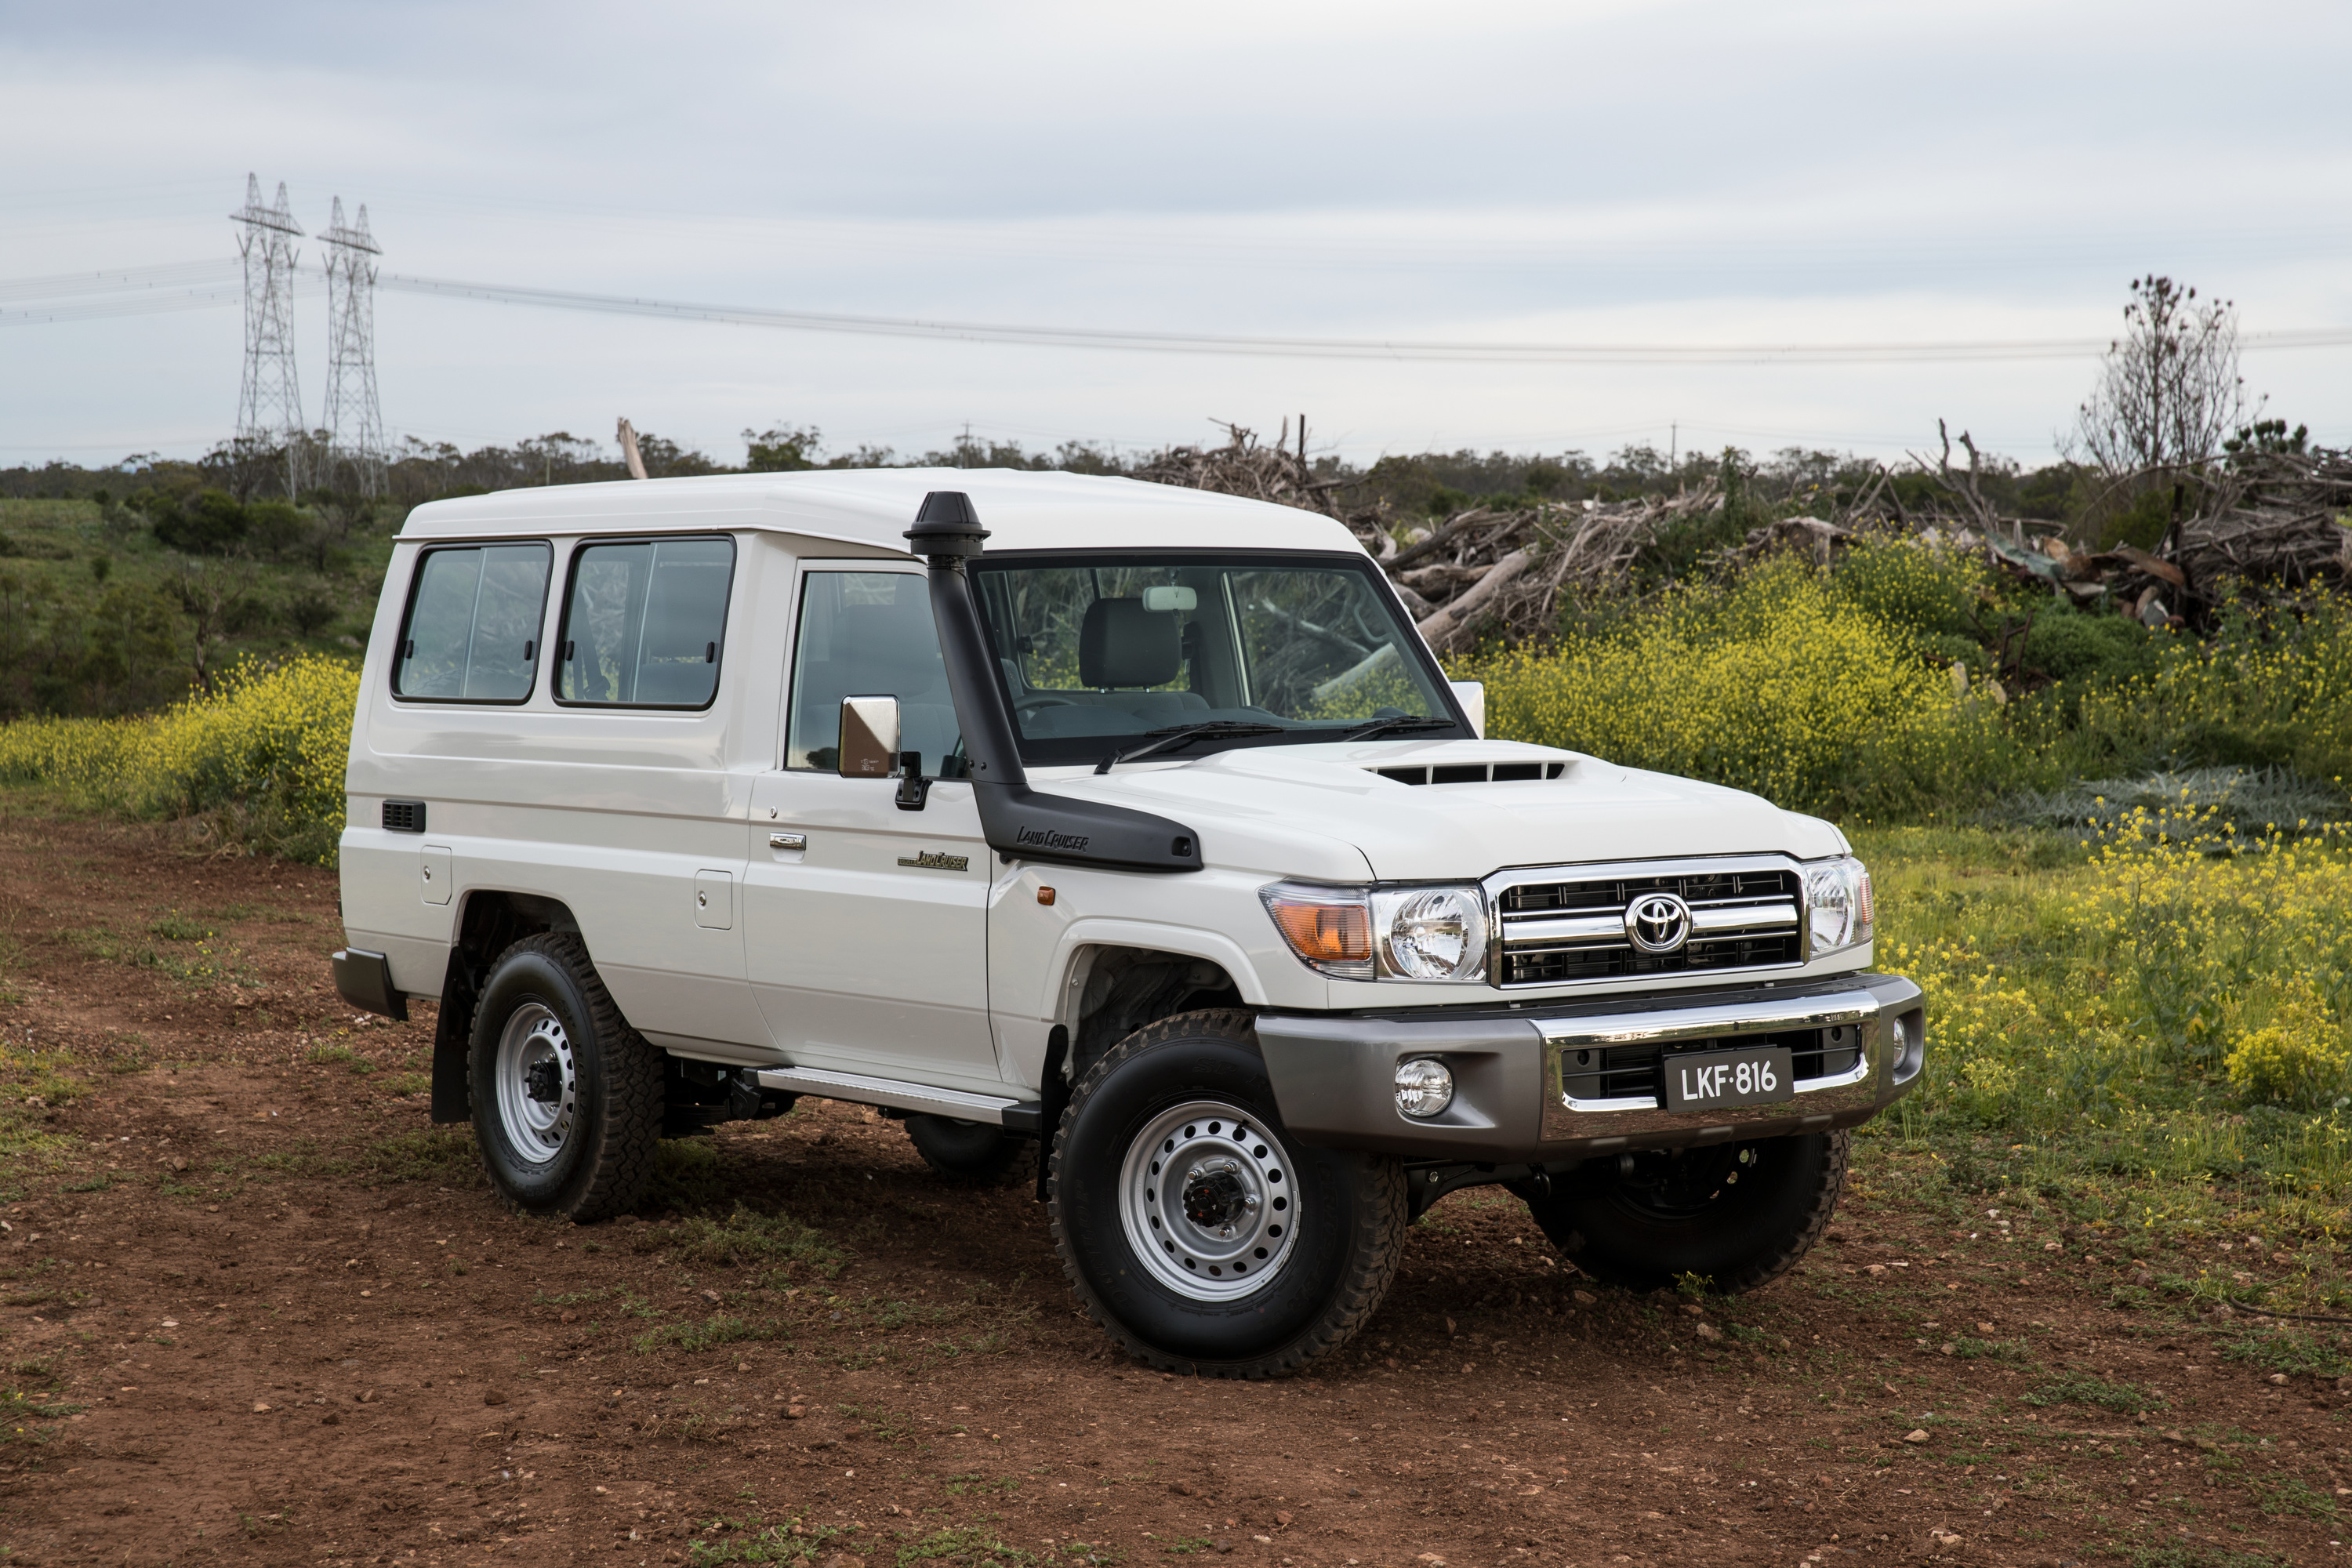 Toyota Land Cruiser 70 >> 2017 Toyota LandCruiser 70 Series Review | CarAdvice